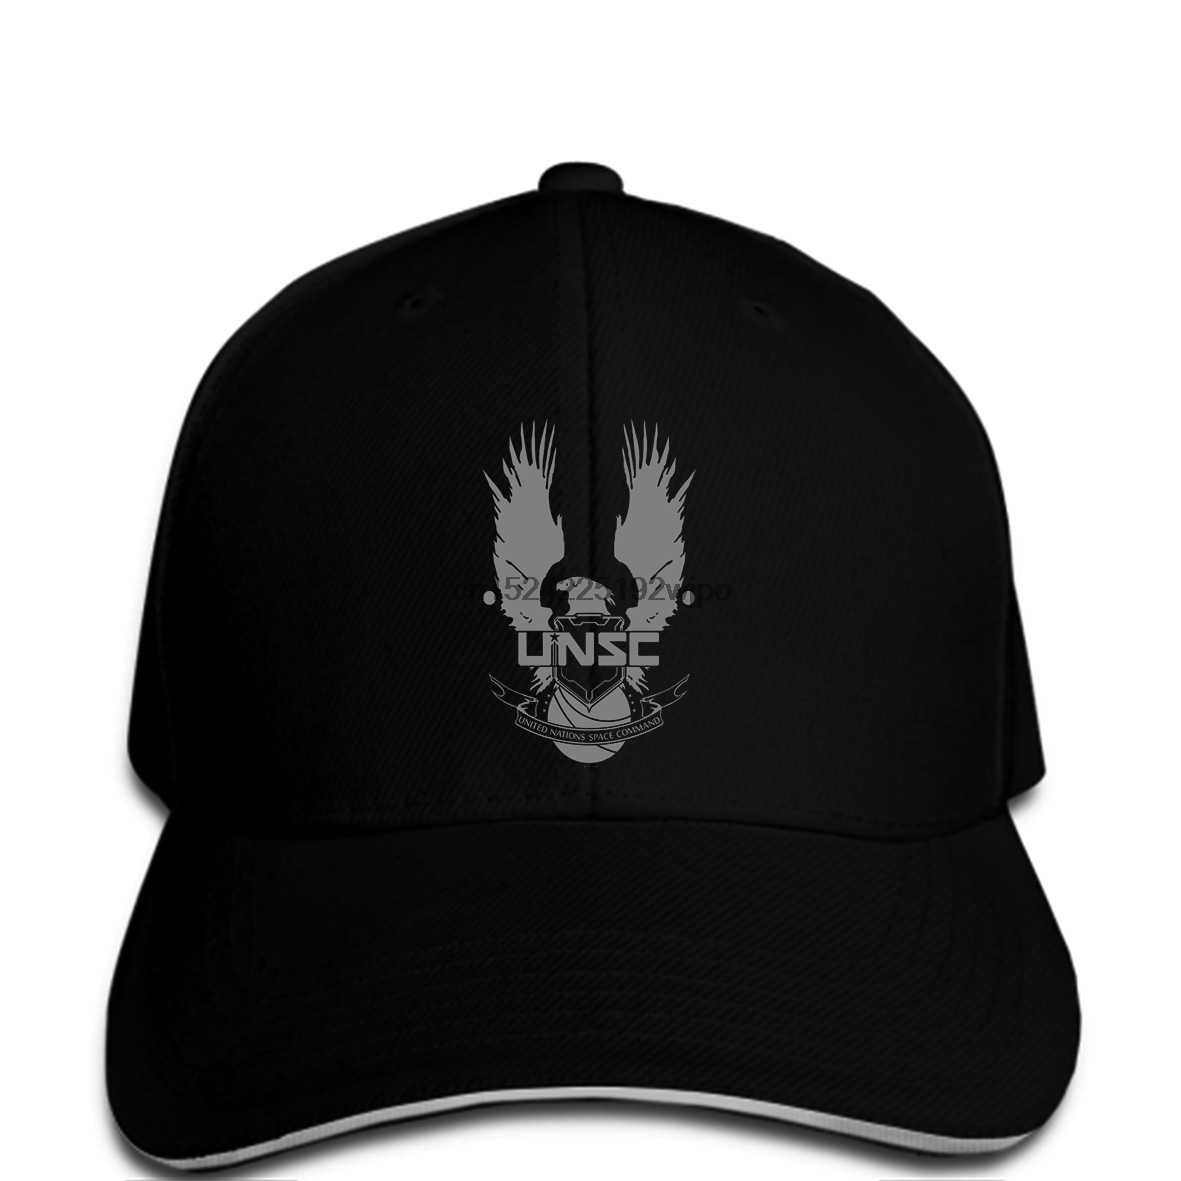 b2f951db28cfd Detail Feedback Questions about Funny Men Baseball cap Women novelty cap  Halo Unsc United Nations Space Command Gamer  1 cool cap1 on Aliexpress.com  ...